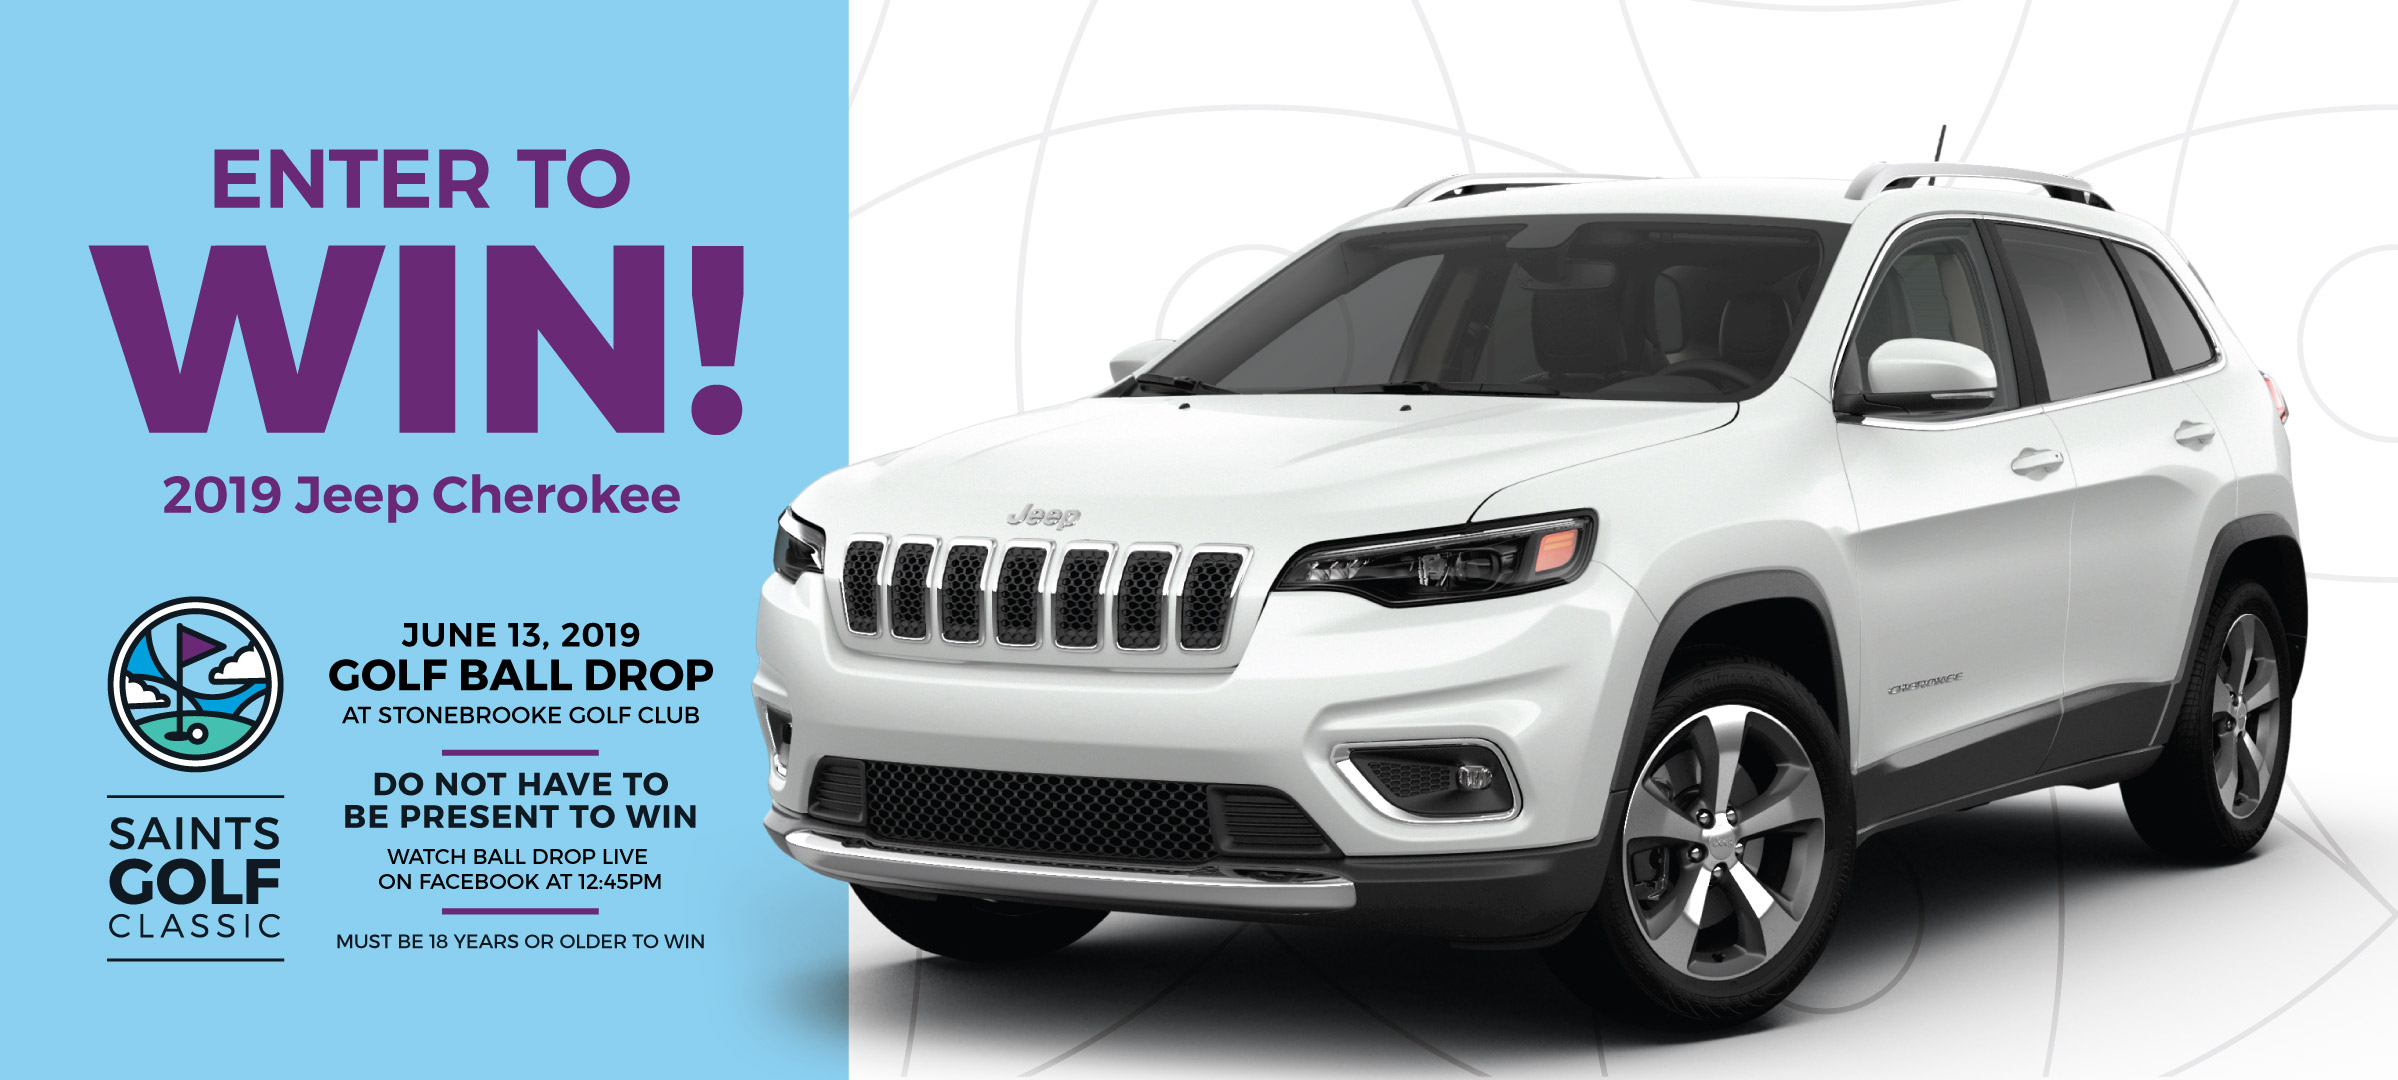 Win a 2019 Jeep Cherokee